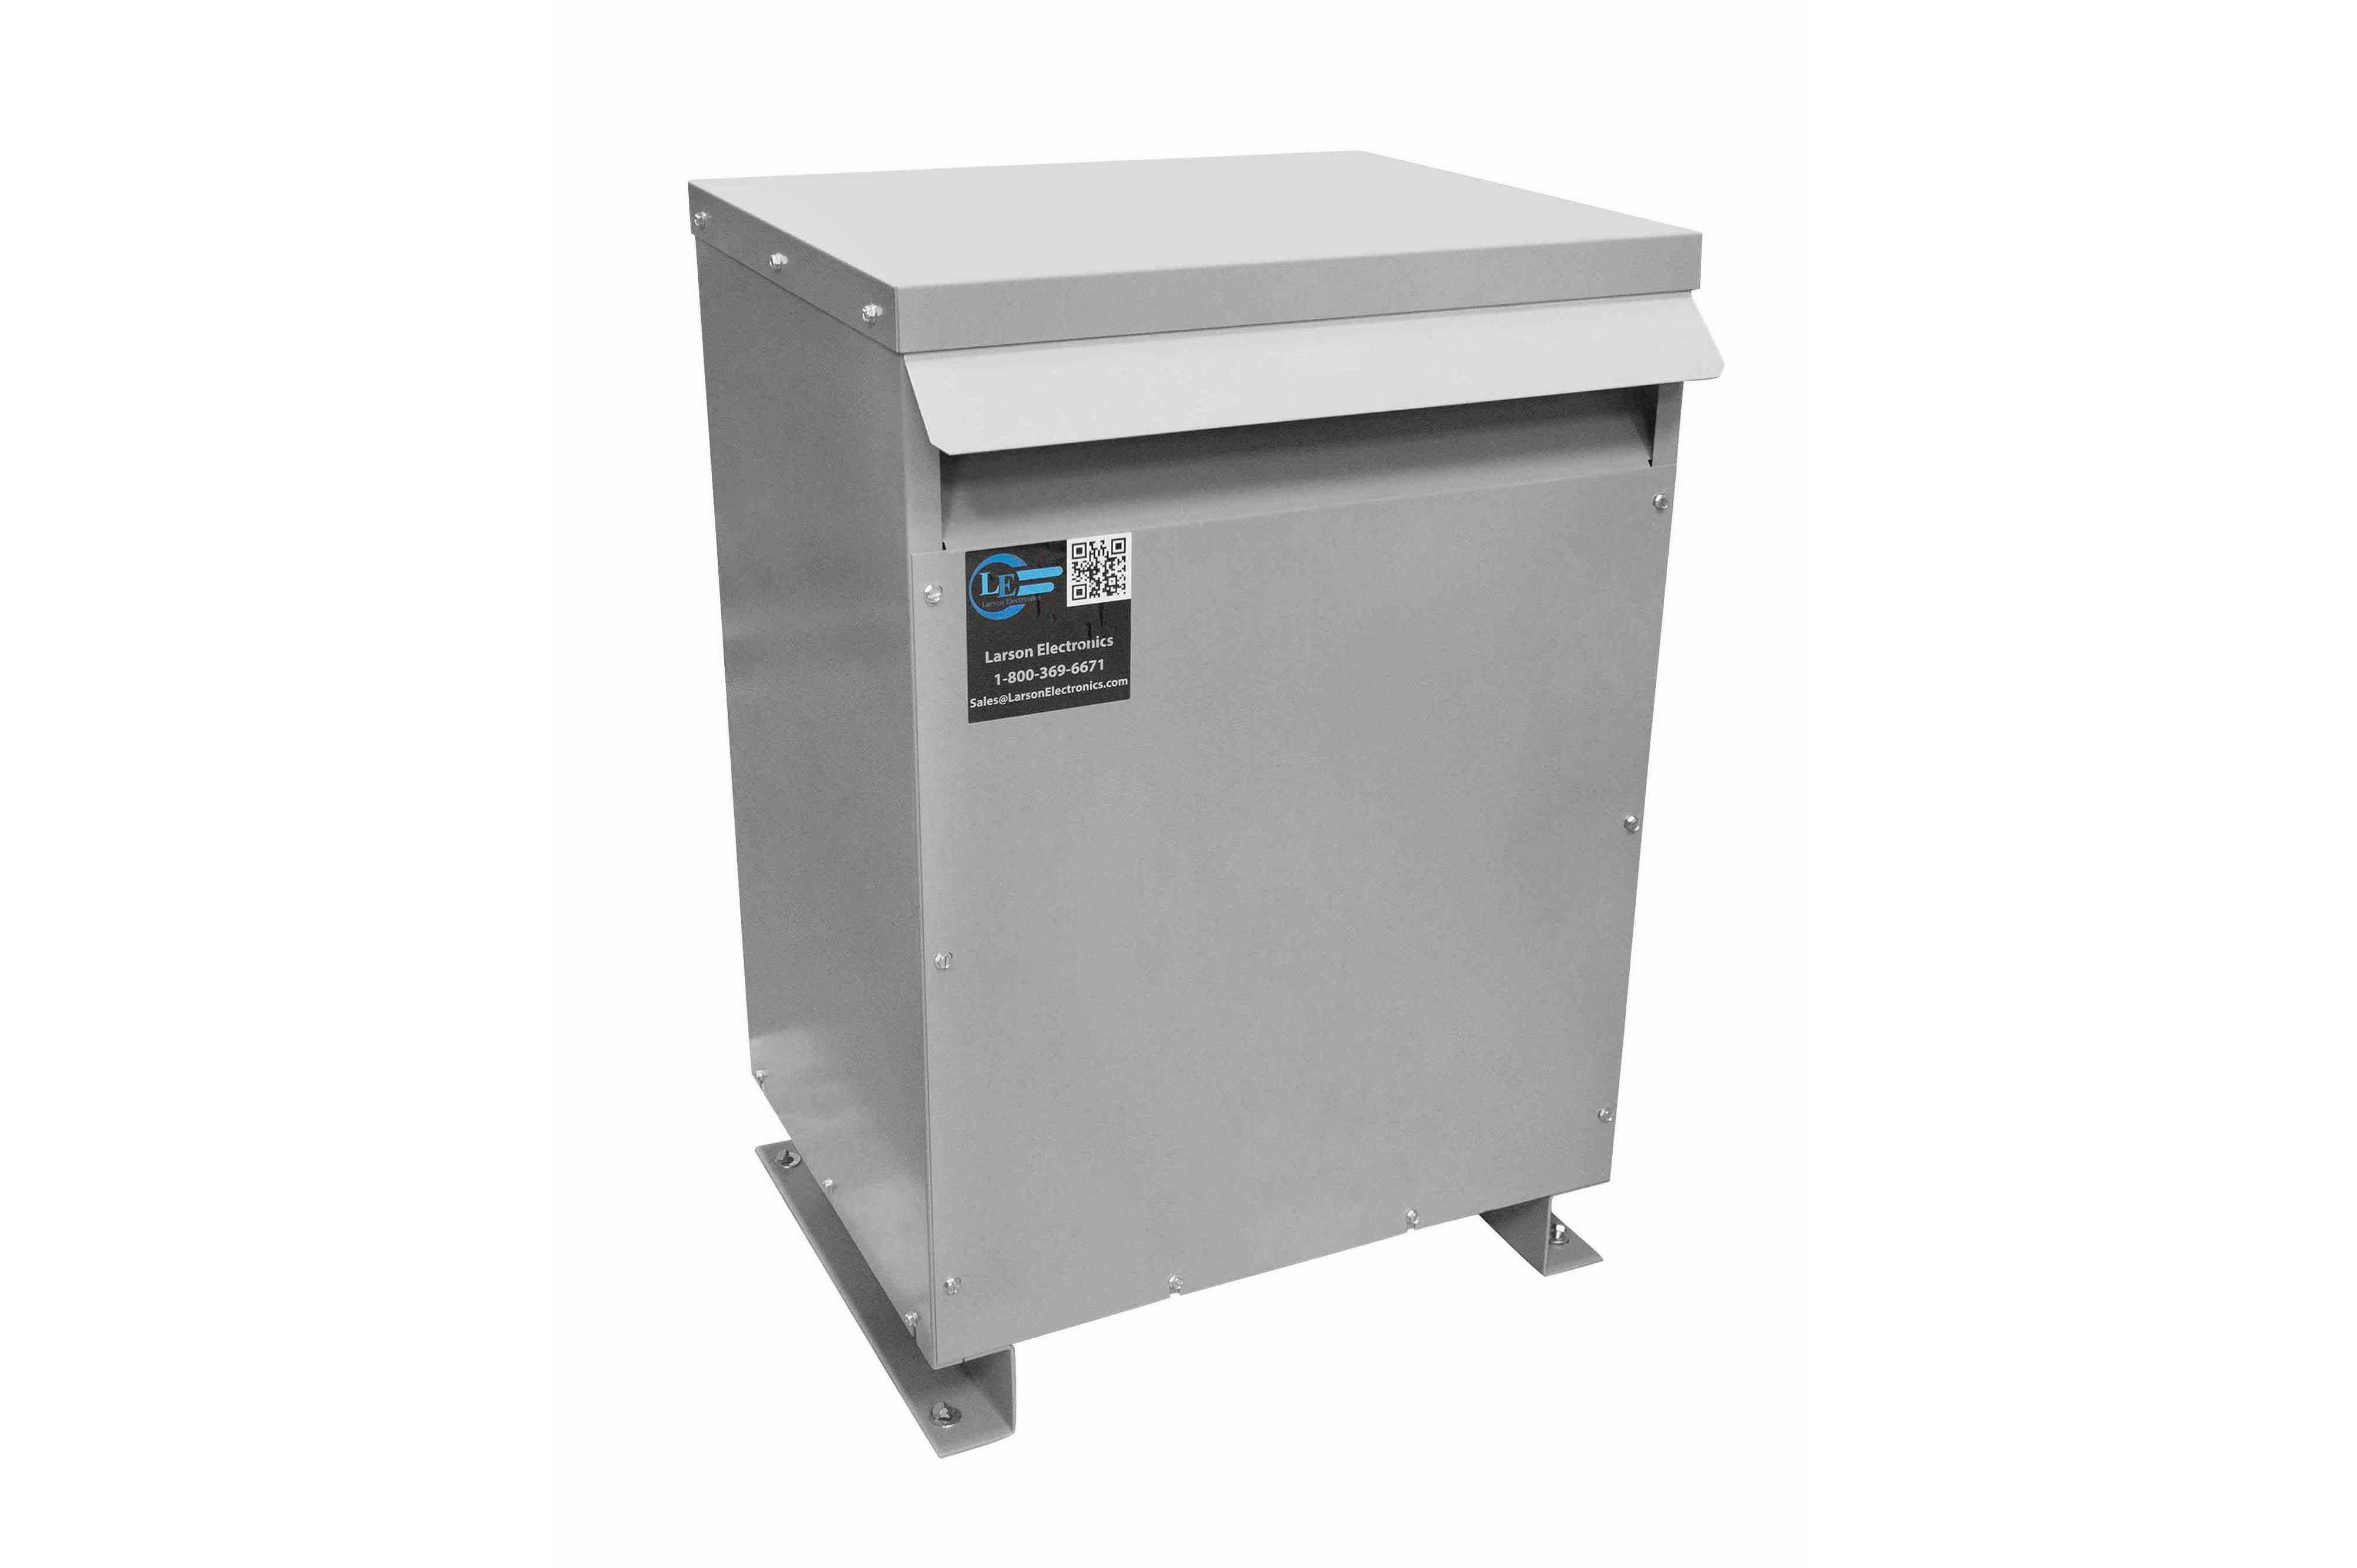 11 kVA 3PH Isolation Transformer, 600V Wye Primary, 415V Delta Secondary, N3R, Ventilated, 60 Hz